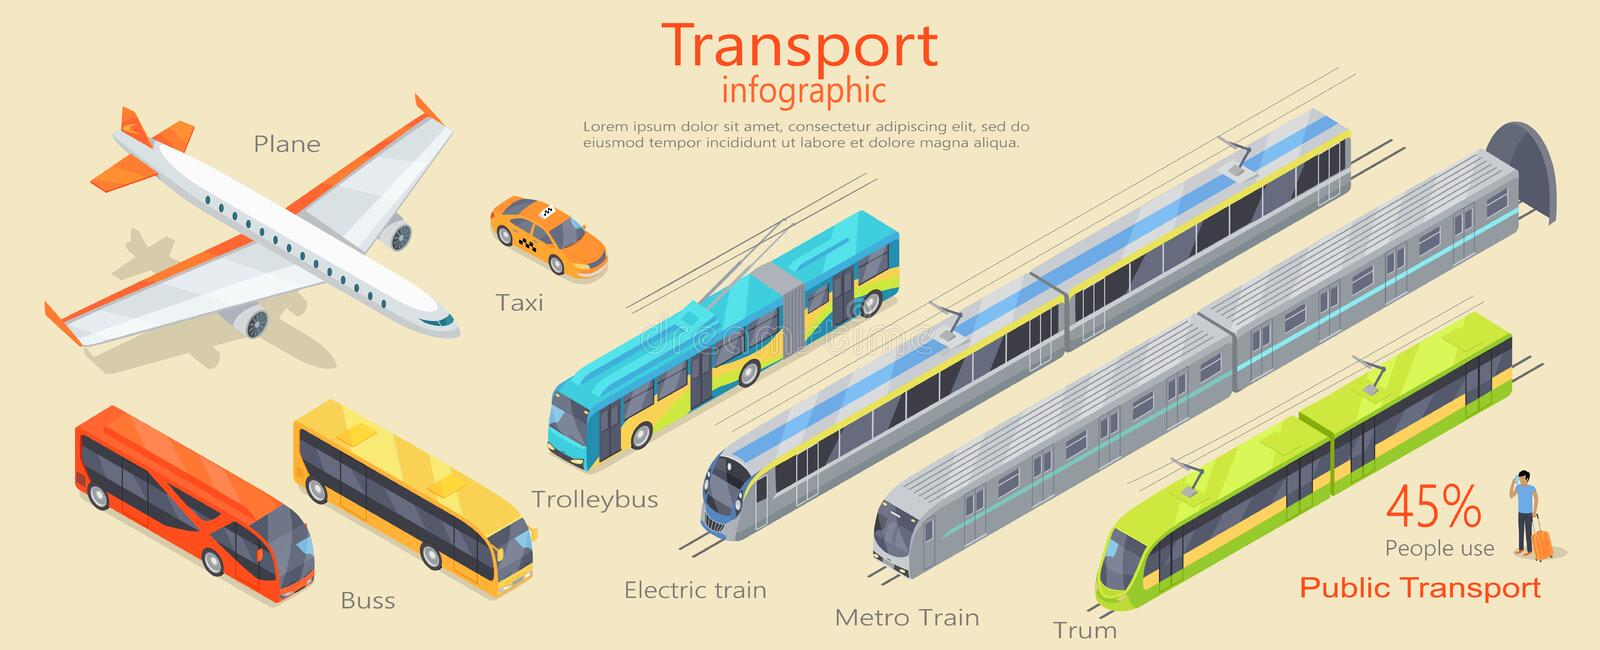 Infographic transport offentlig transport vektor vektor illustrationer